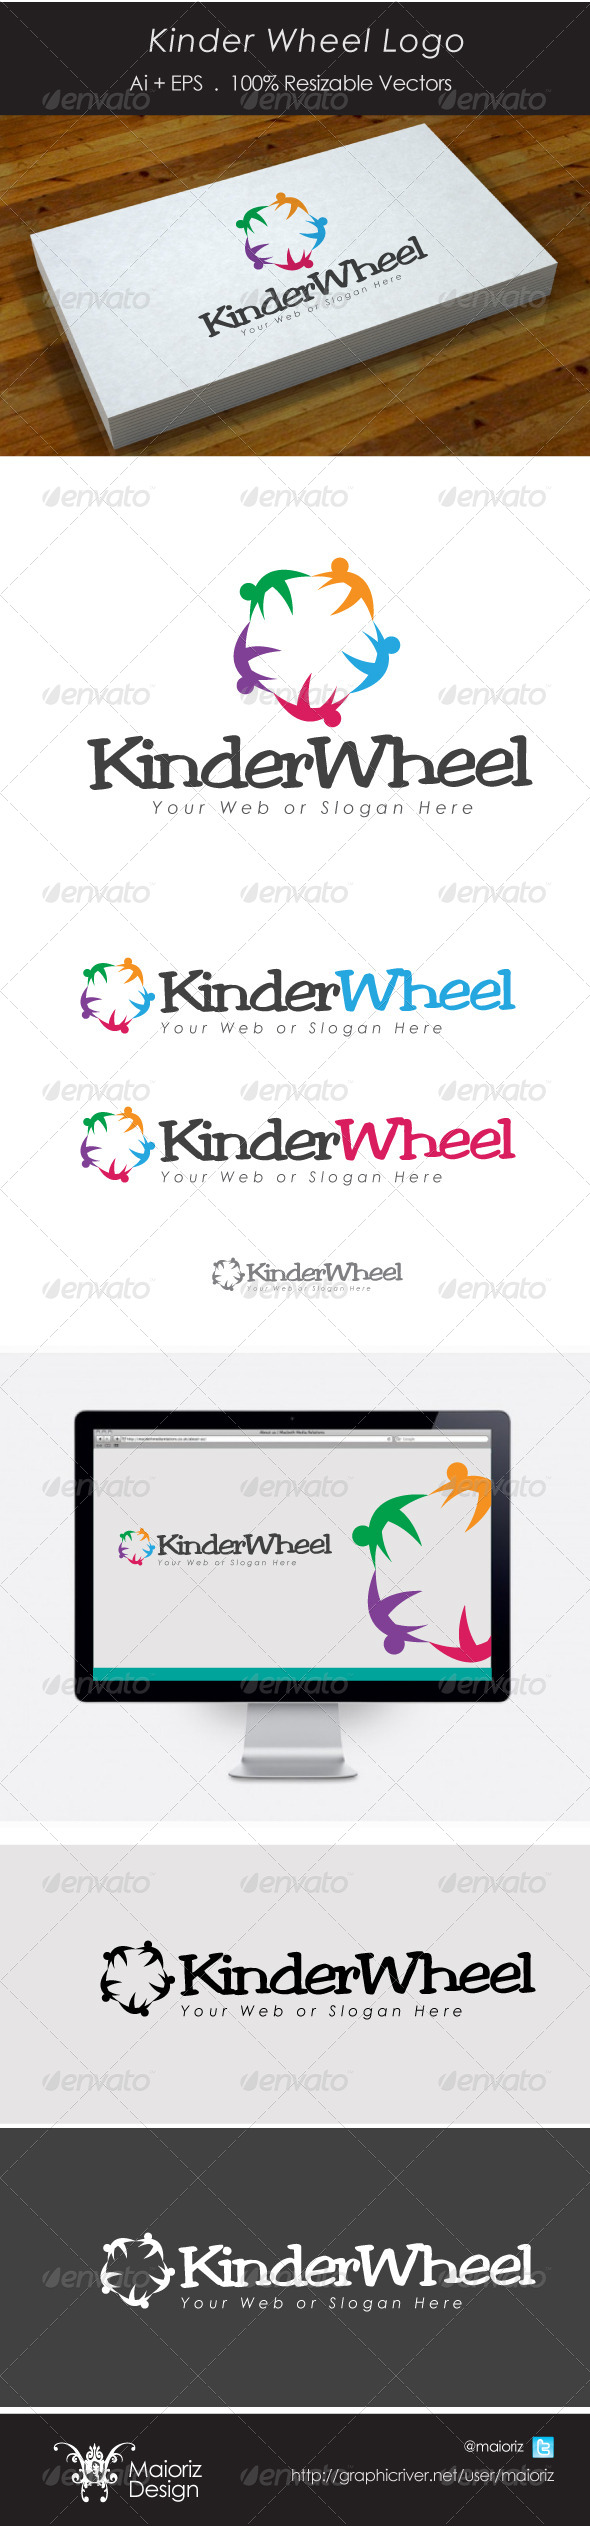 Kinder Wheel Logo - Vector Abstract